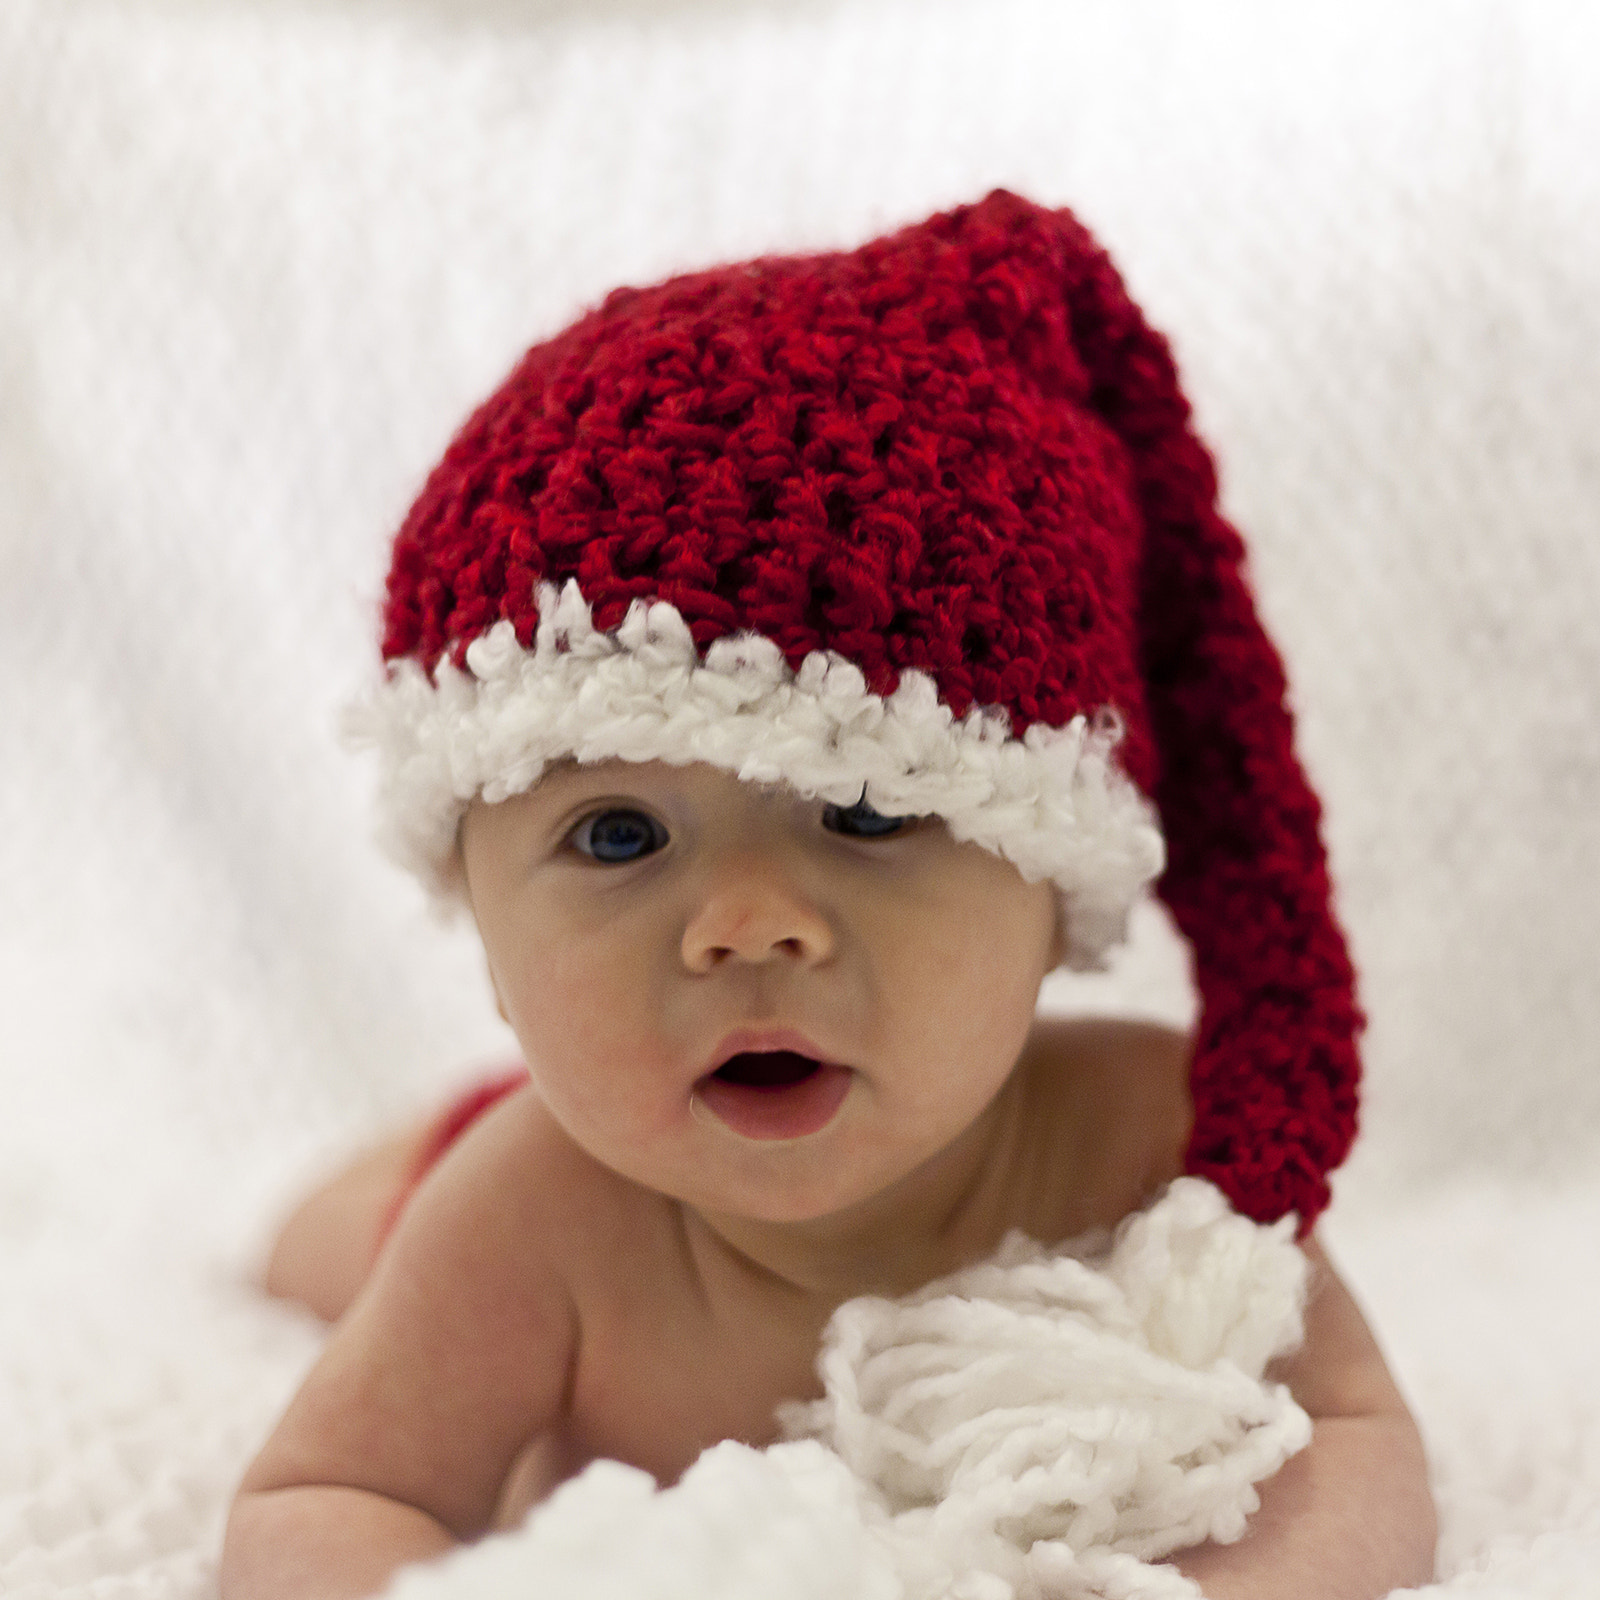 Photograph Clément - Christmas Pretty Baby by Thibaut Daumont on 500px